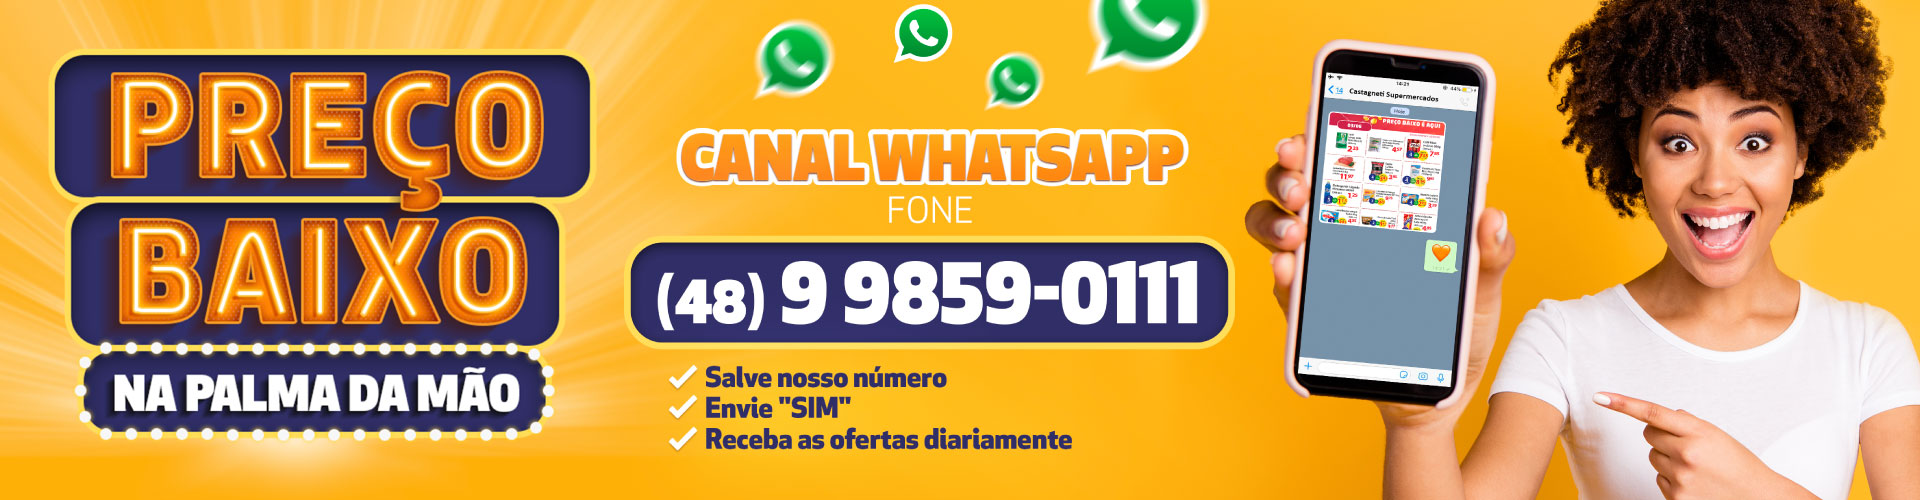 canal whats